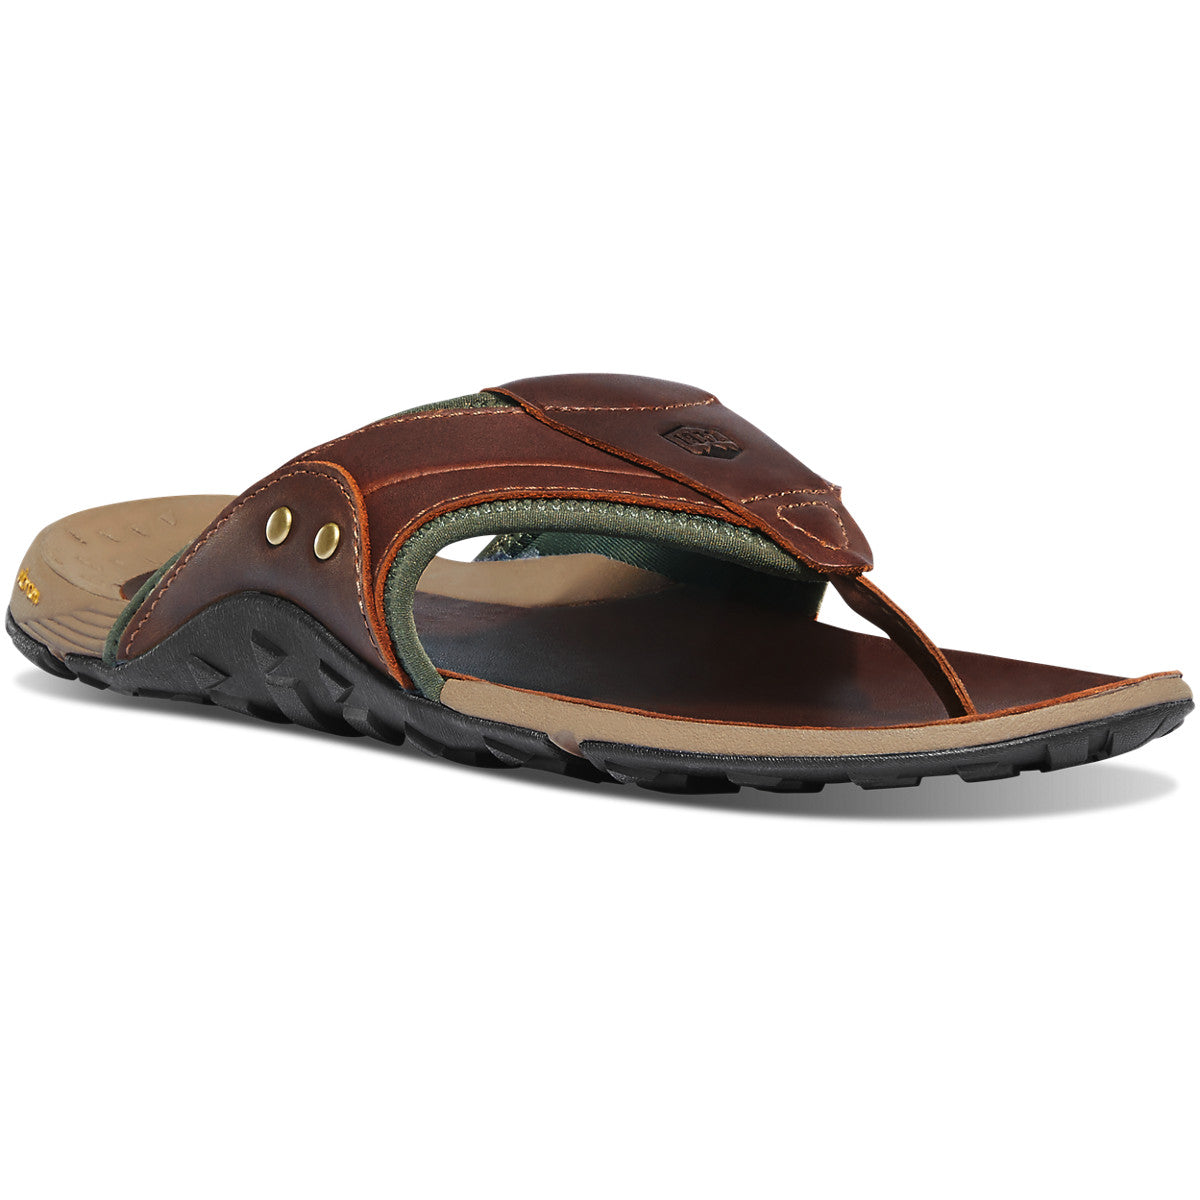 Lost Coast Sandal - Men's